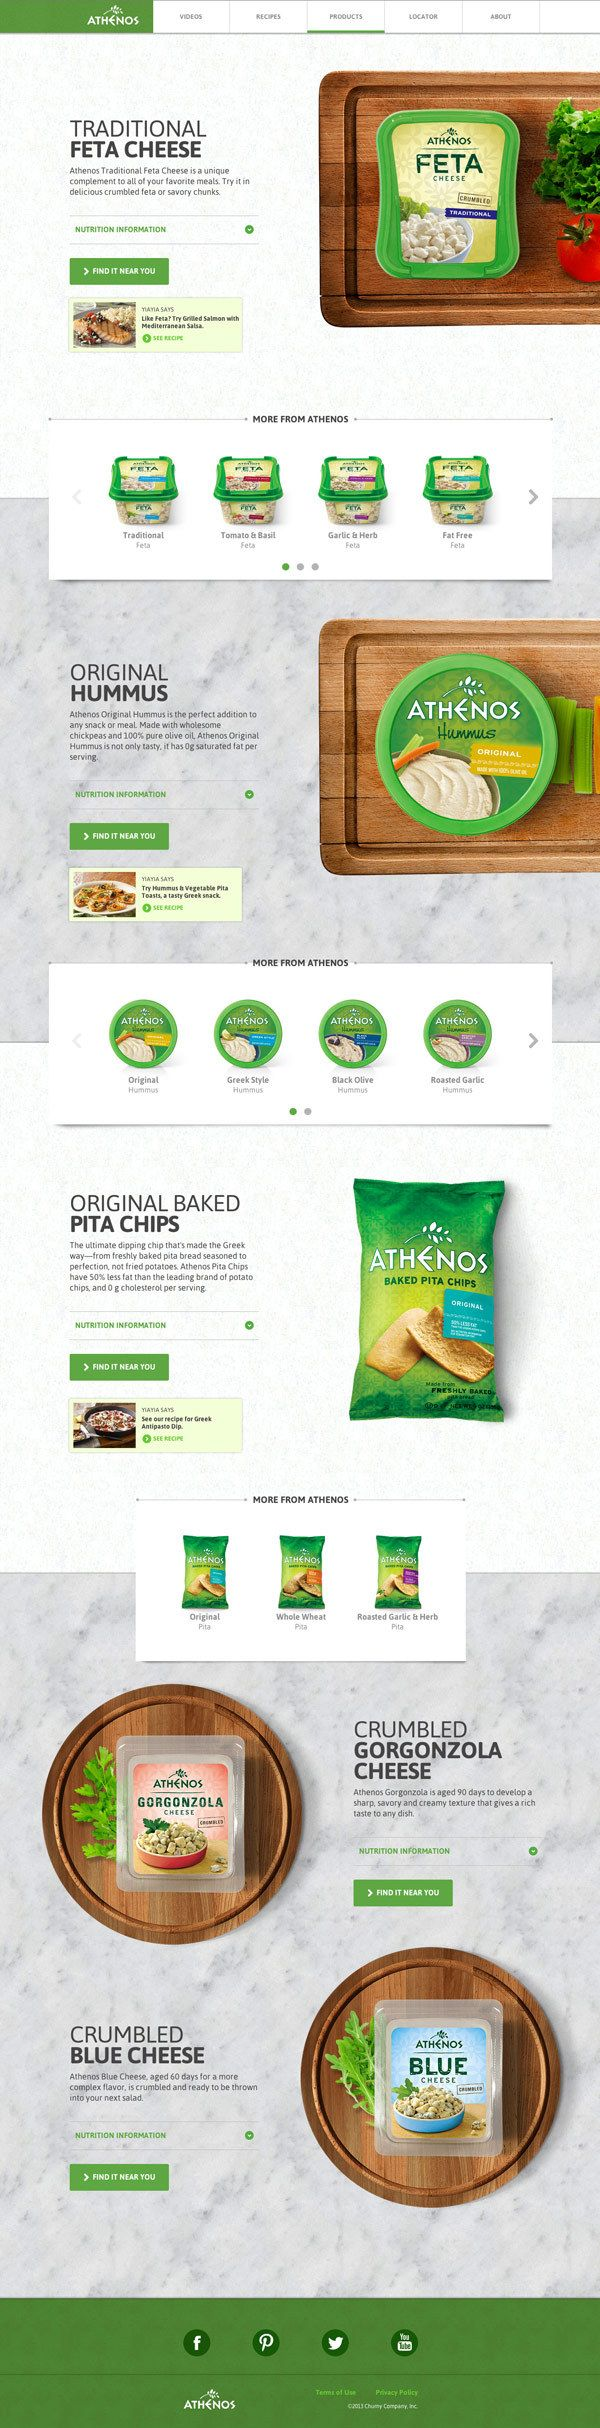 Athenos by Jen Lu, via Behance | #webdesign #it #web #design #layout #userinterface #website #webdesign < repinned by www.BlickeDeeler.de | Visit our website www.blickedeeler.de/leistungen/webdesign